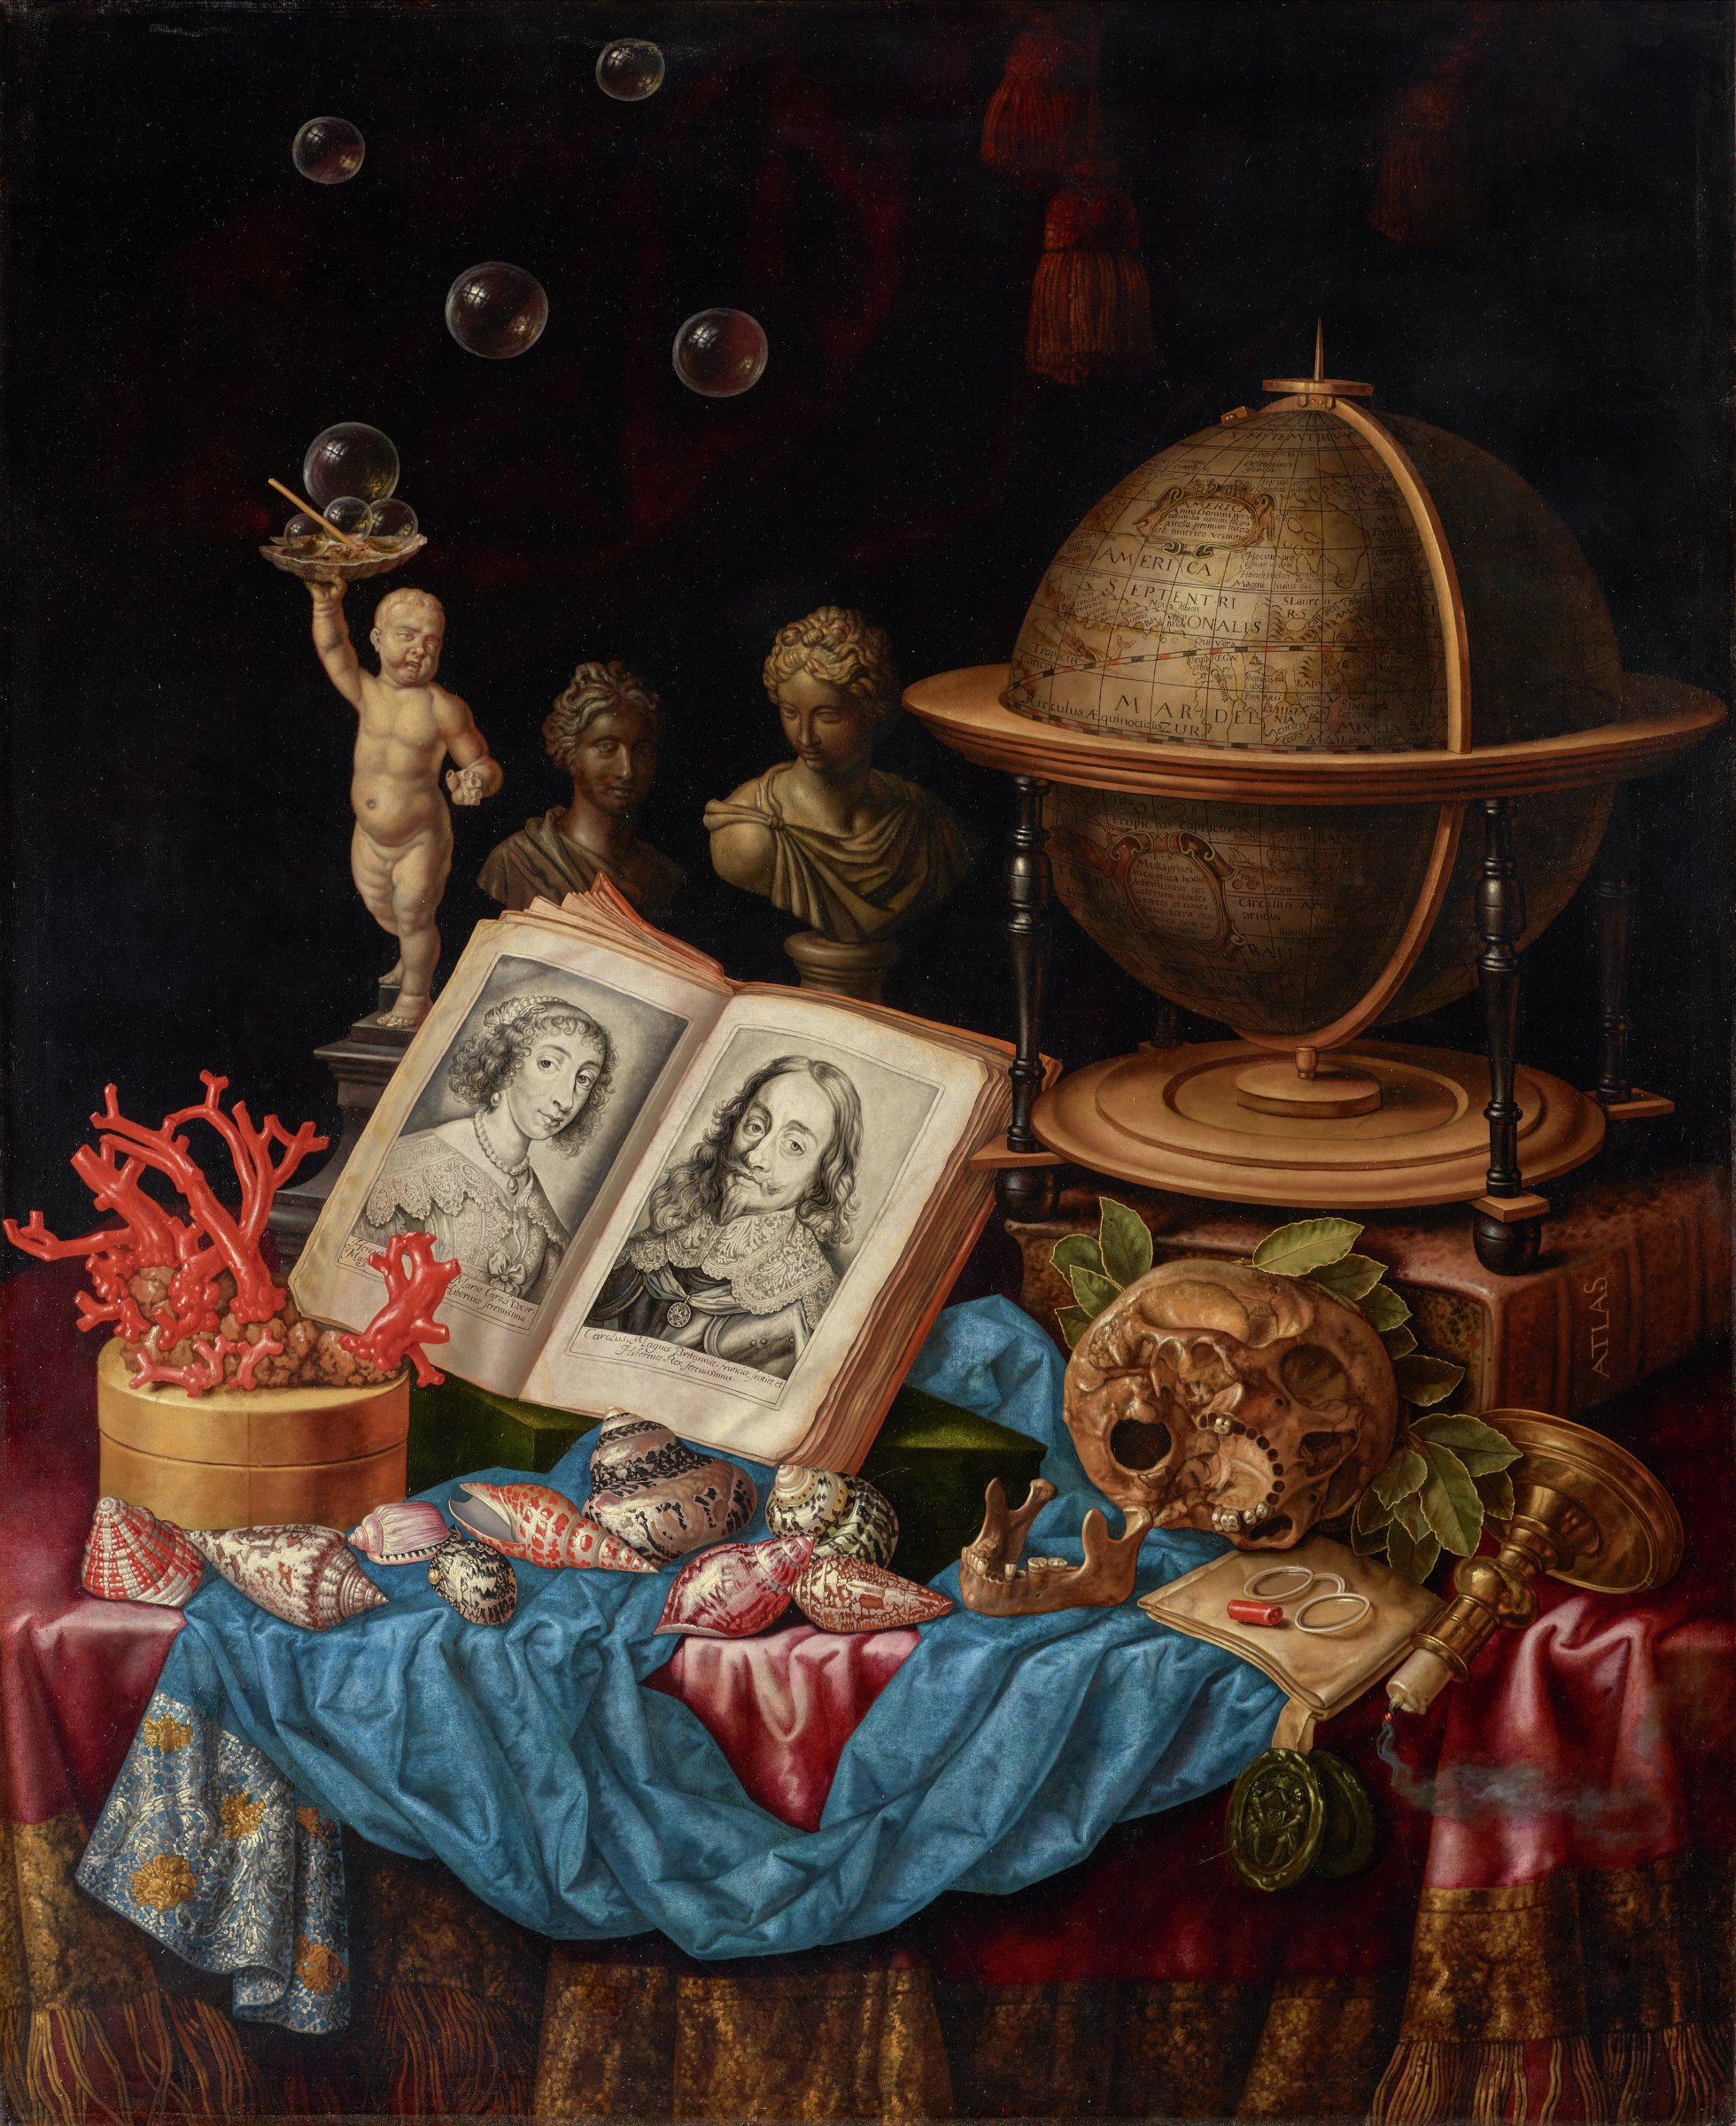 This still life of inanimate objects has been assembled on a table draped with red and blue textiles. The arrangement includes a globe, a skull with a detached jawbone, a book opened to pages with printed portraits of Charles I and Henrietta a round box with coral branches on the lid, shells, a statue of a putto, two female busts, bubbles, glasses, and a candleholder that has fallen over with the candle just snuffed out.